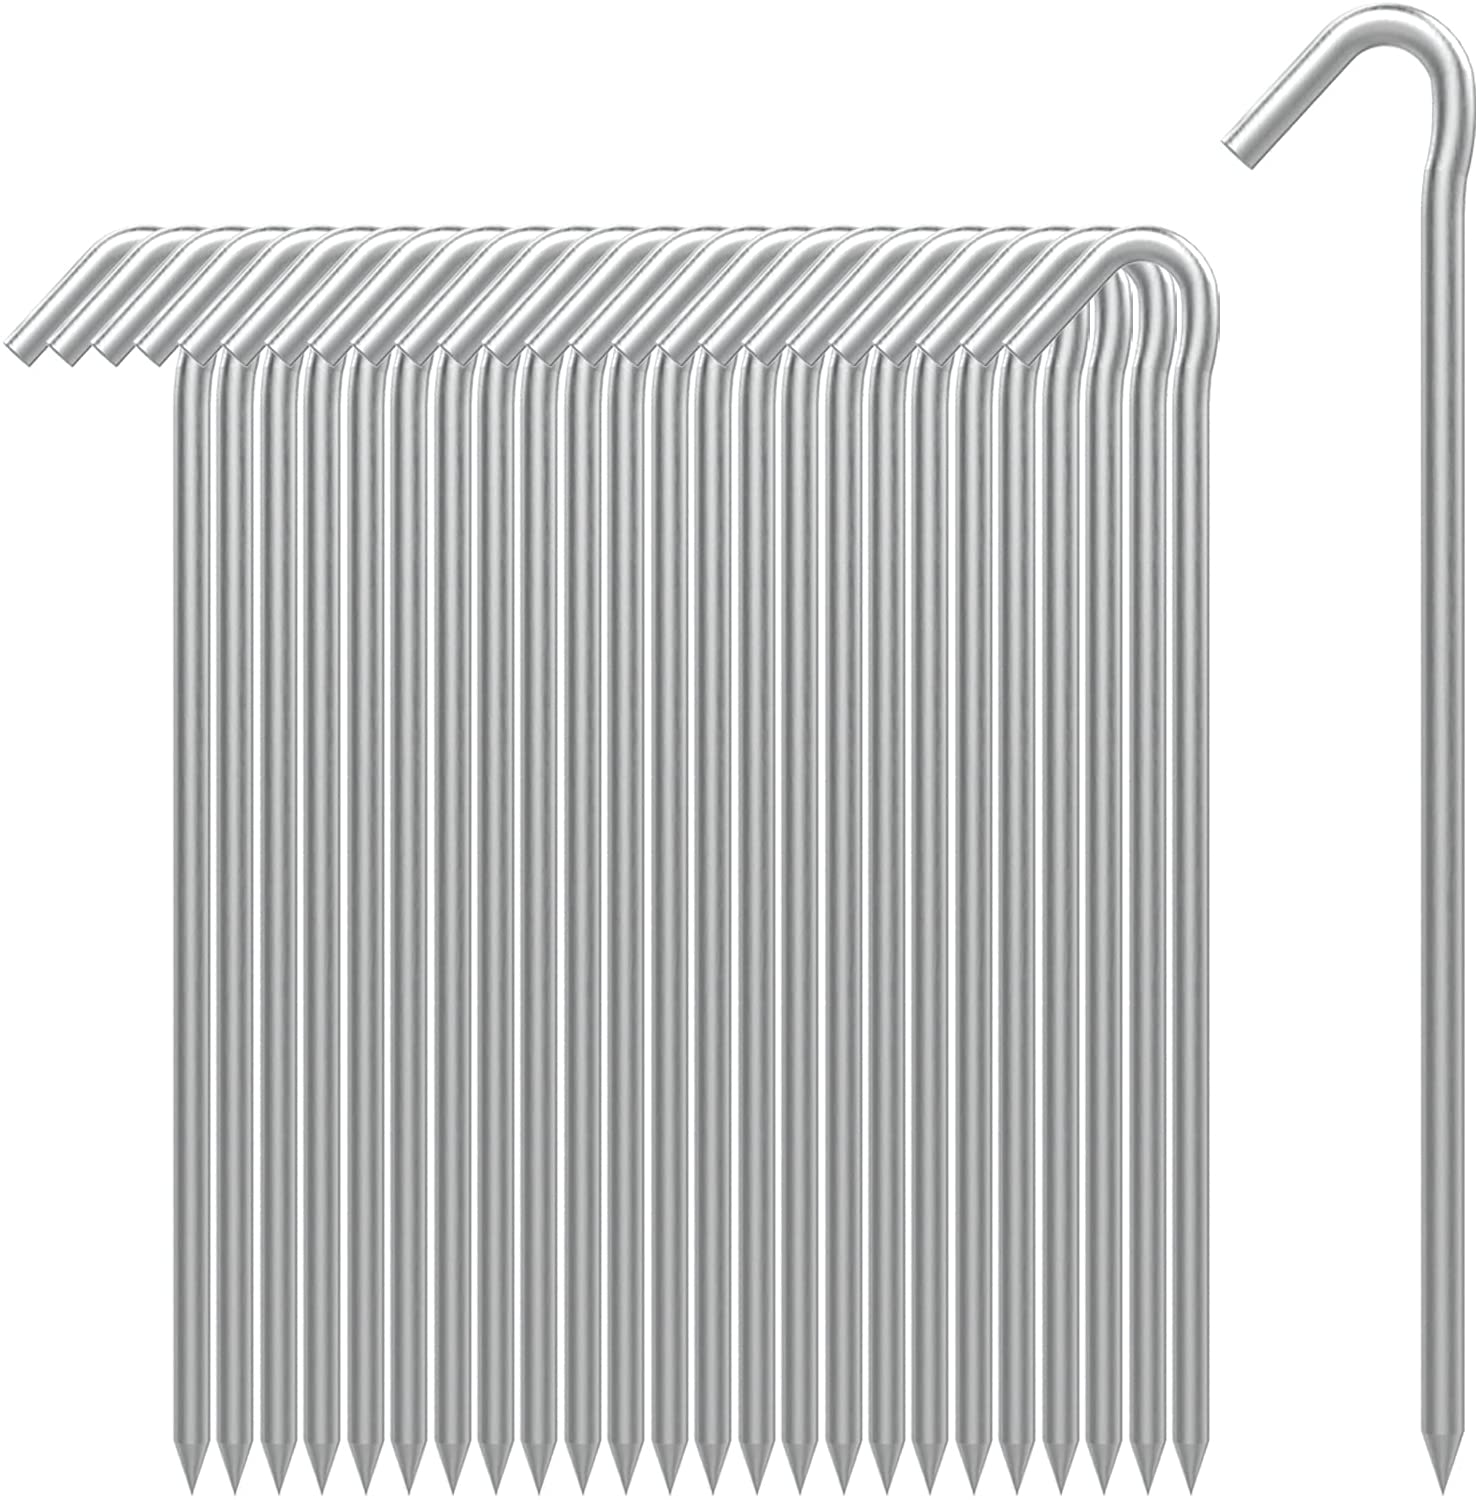 AAGUT Tent Stakes 25 Pack 9 Pegs Metal Brand new Garde Camping Inch Financial sales sale